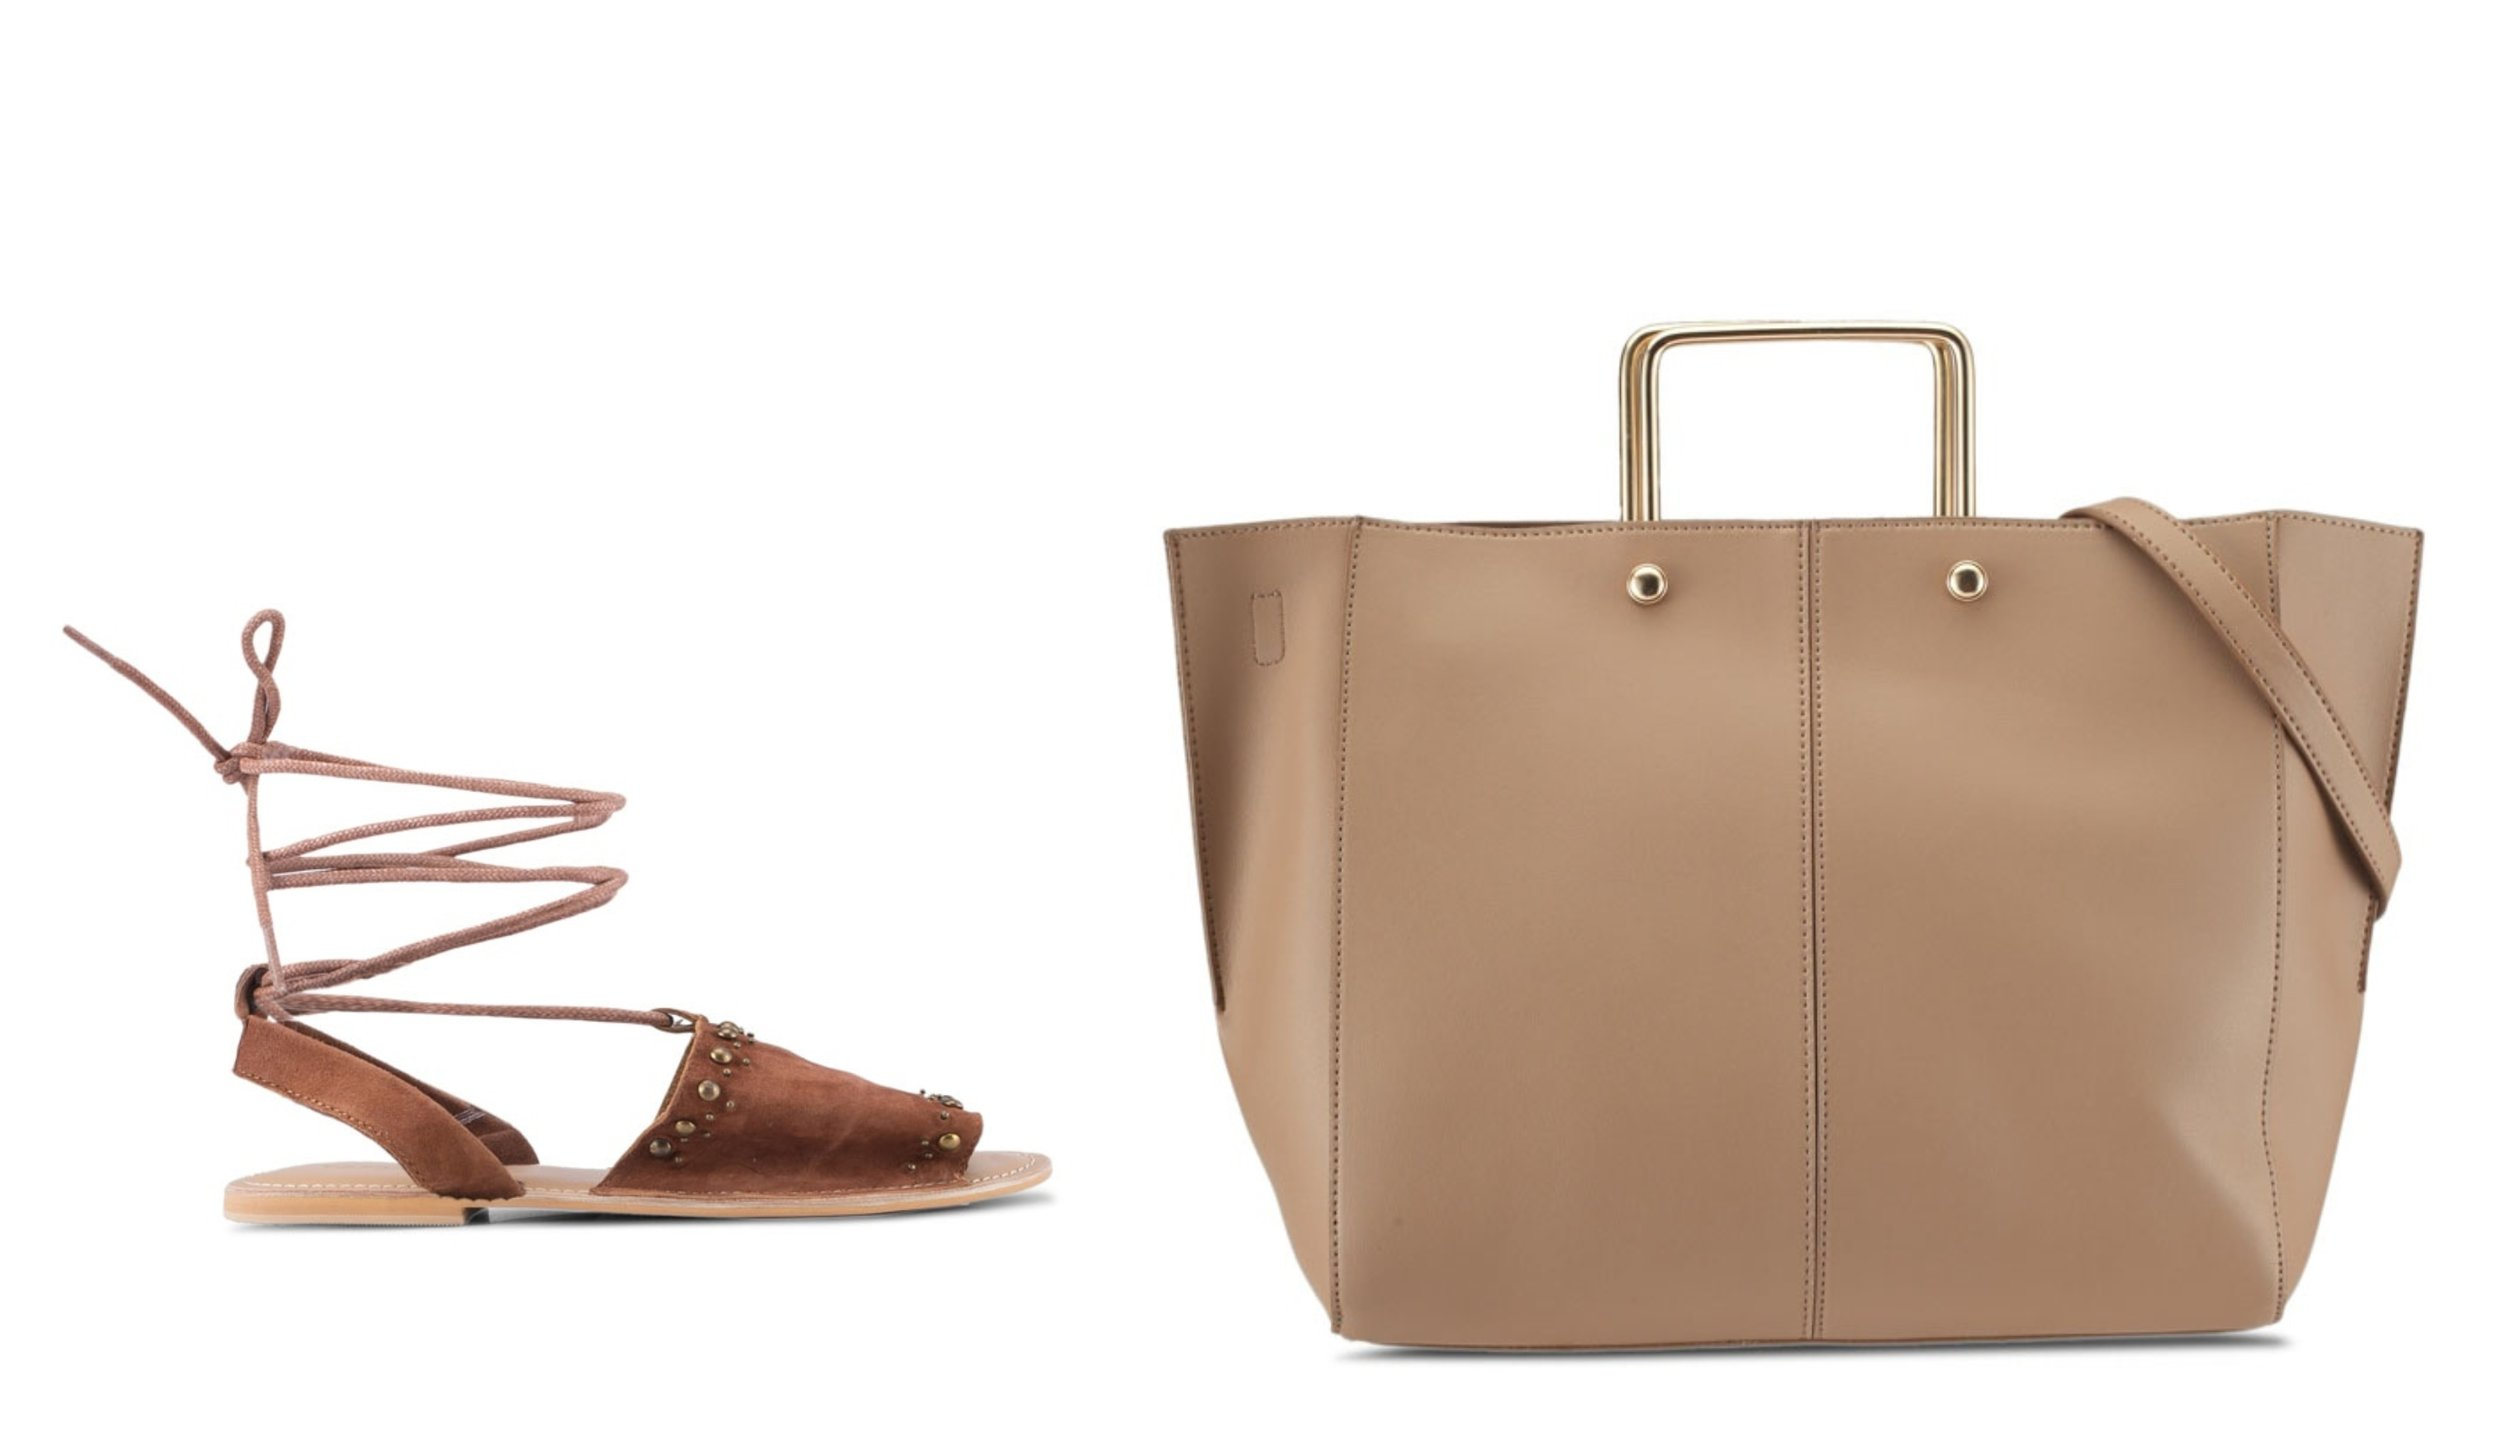 TOPSHOP Hope Studded Sandals      ZALORA Tote Bag With Metal Handle